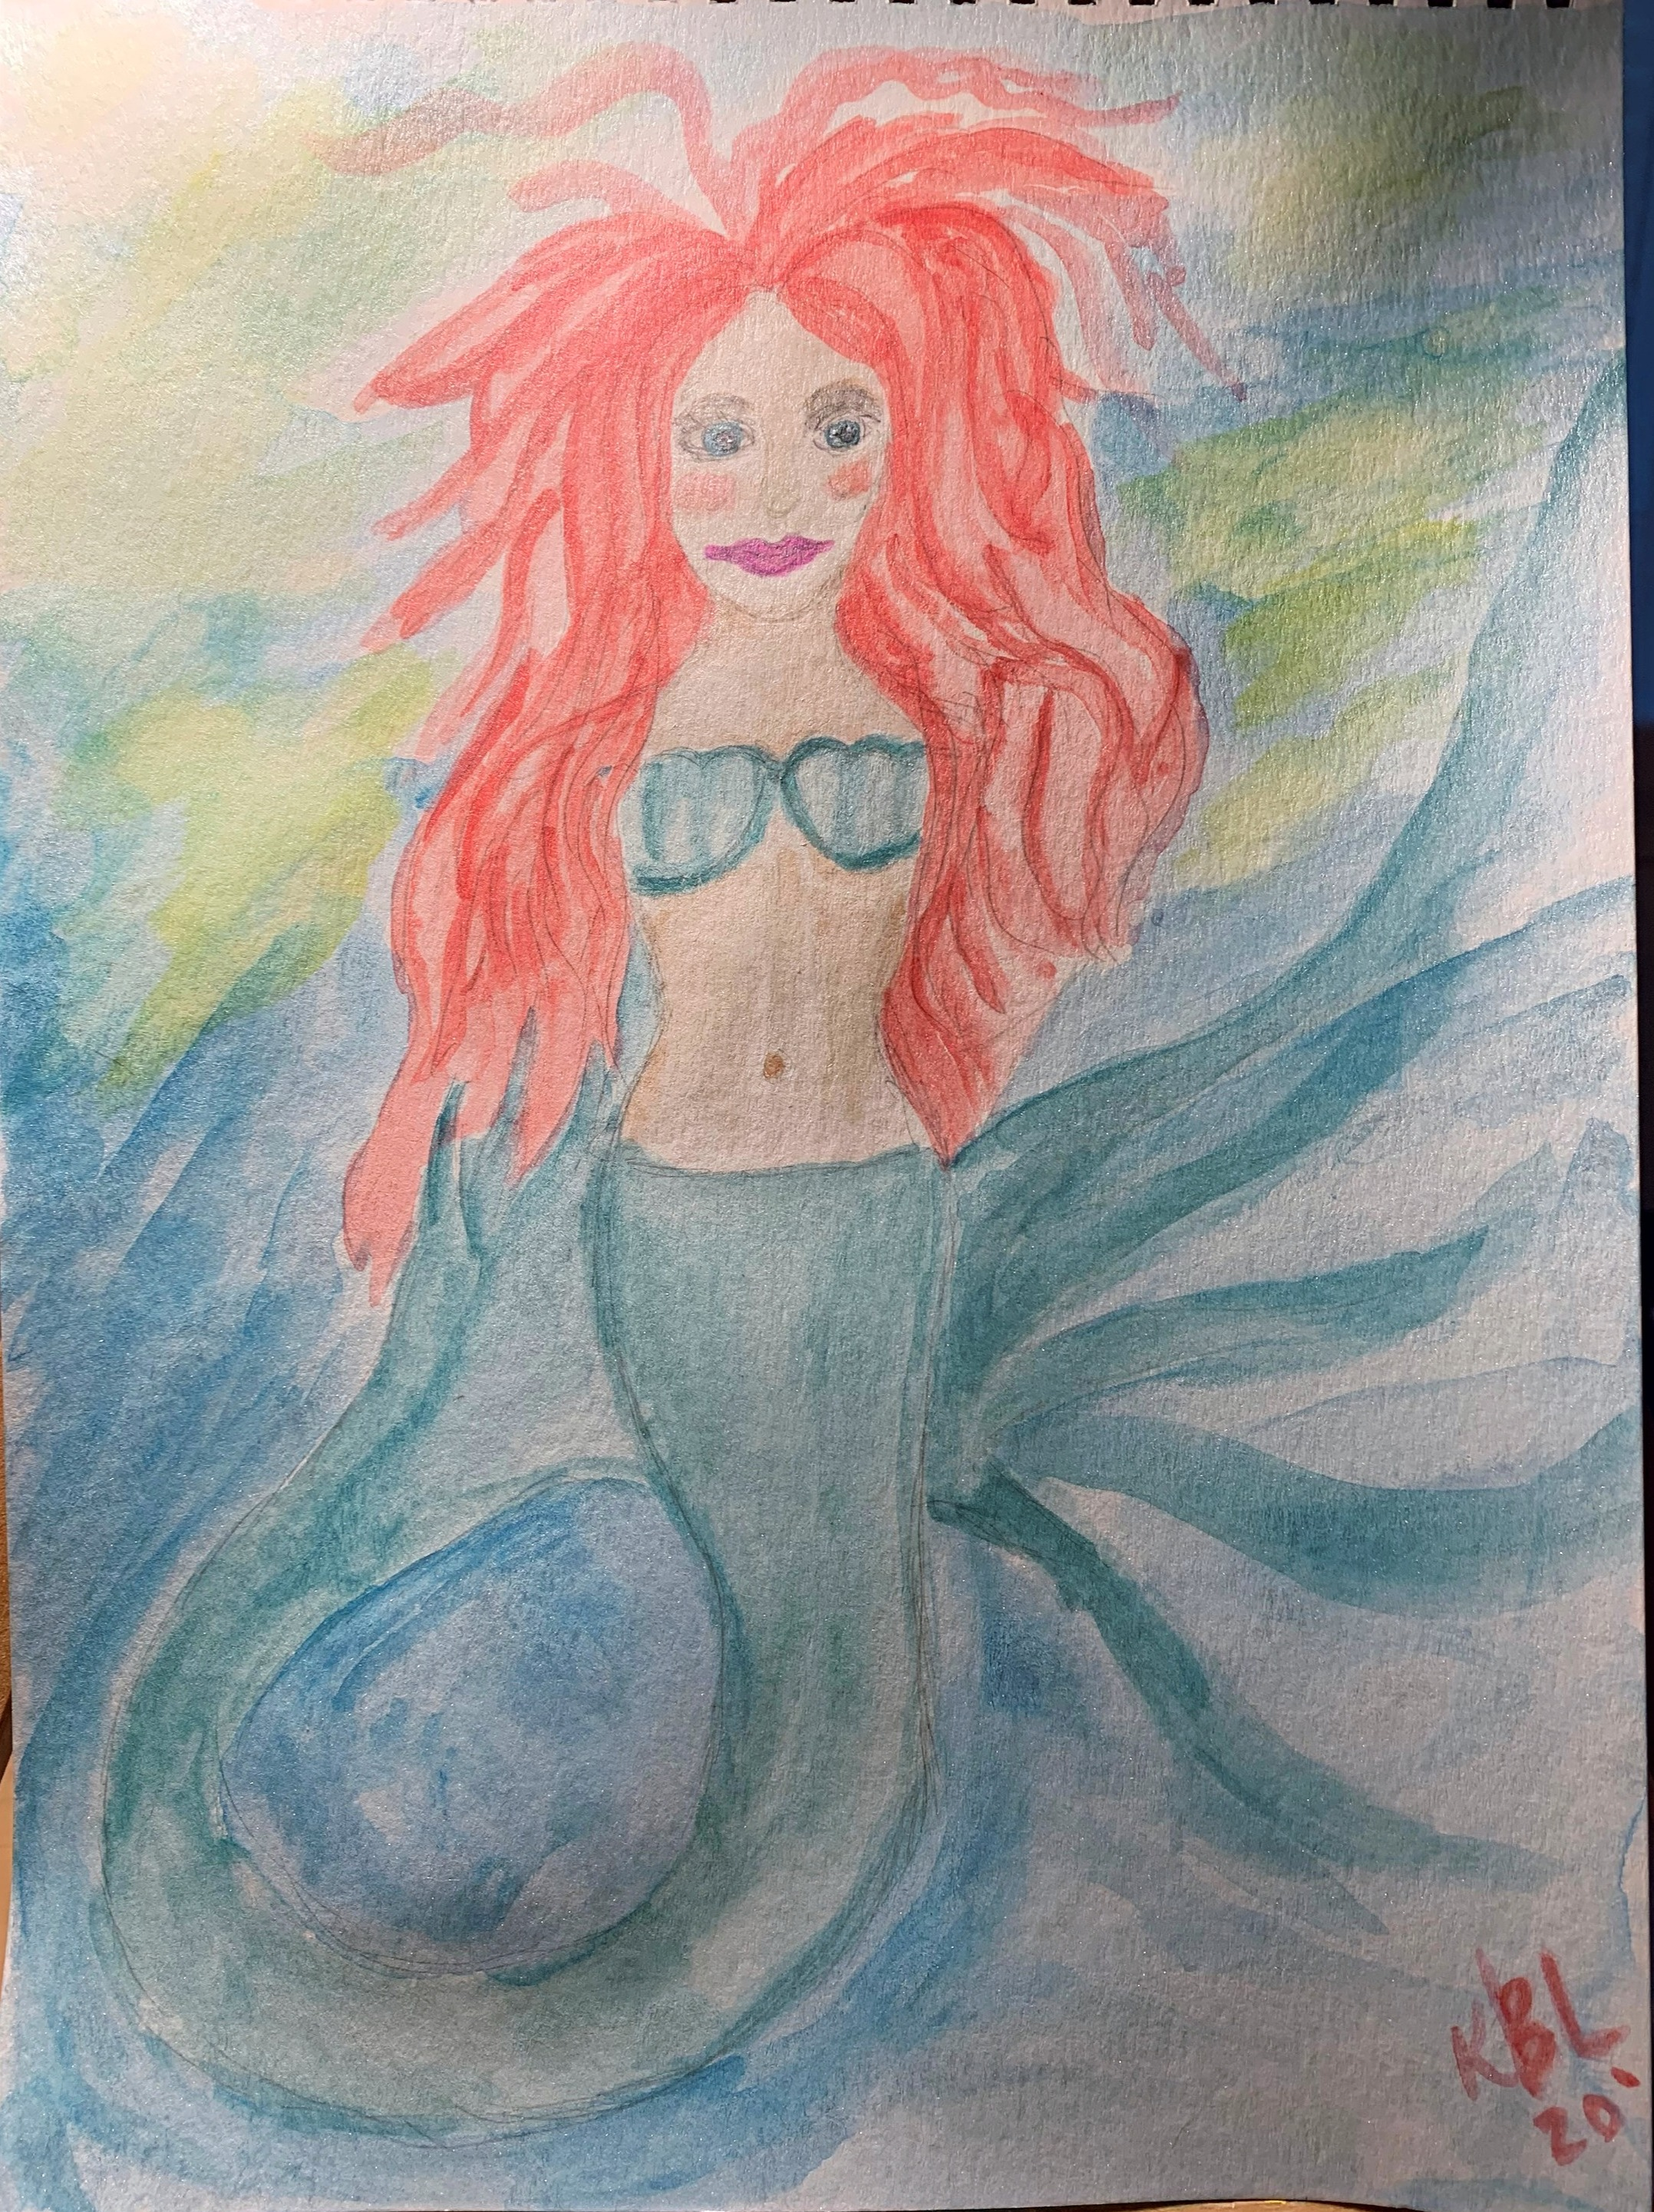 Little Mermaid with Big Hair